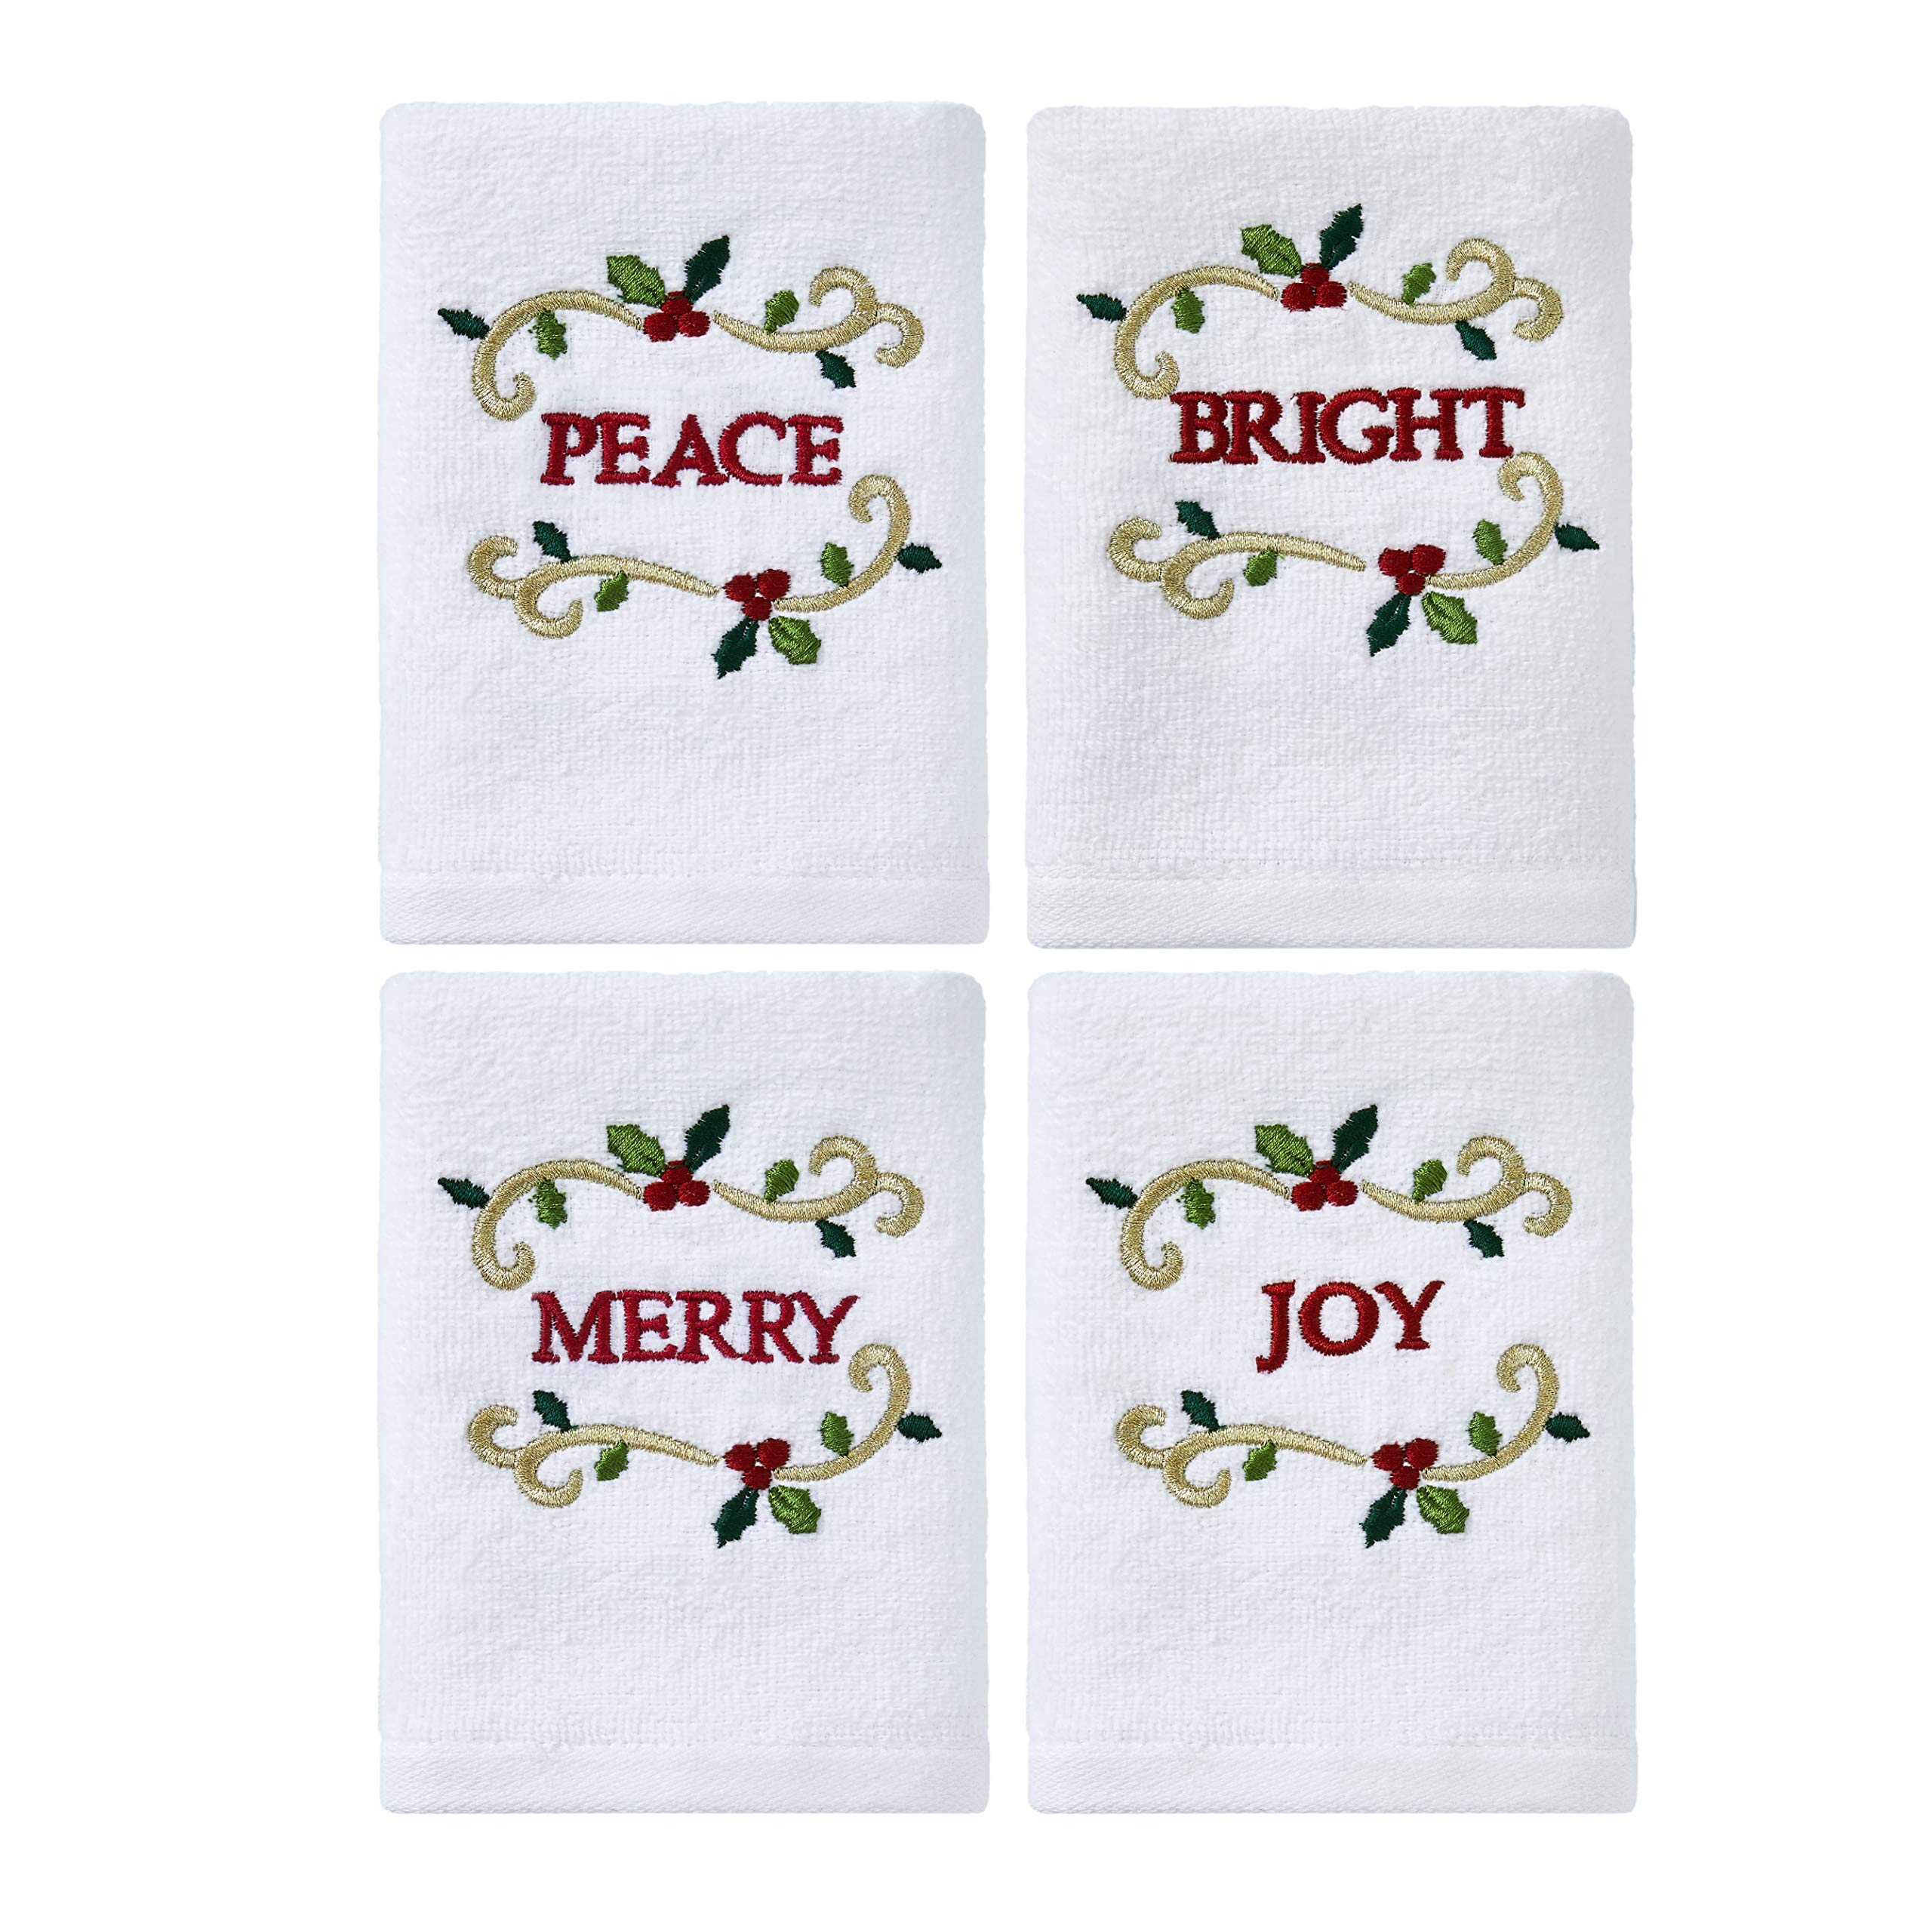 Serafina Home Christmas Holiday White Hand Tip Towels: Decorative Embroidered Peace, Joy, Merry, Bright